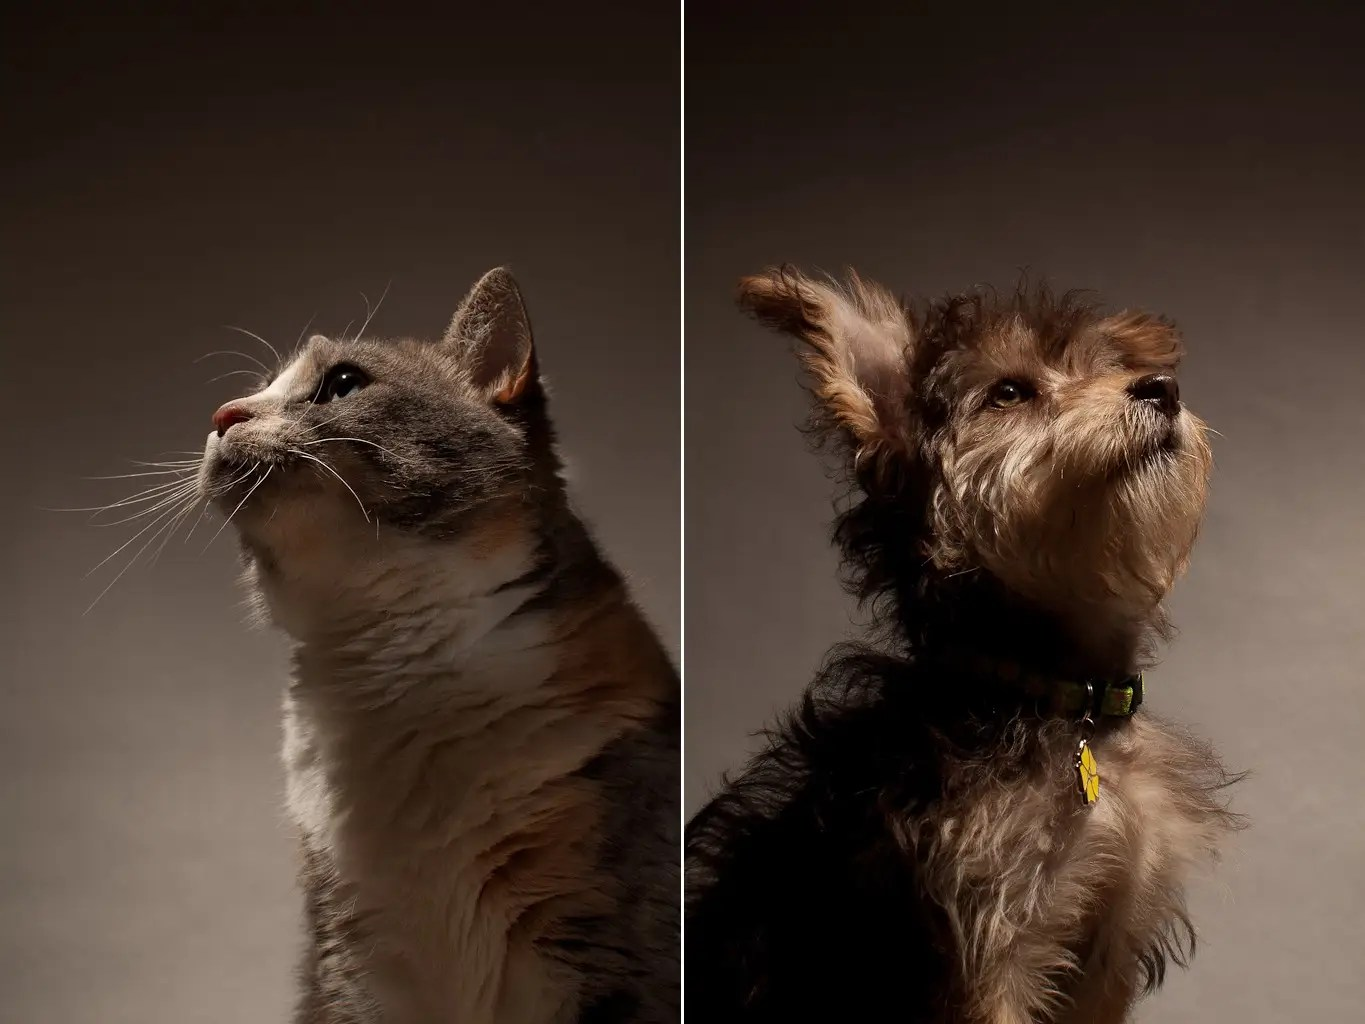 Dogs and cats don't see in shades of grey.  They can see in blue and green. Dogs have a wider field of vision than humans but cannot see as far in front of them as we can.